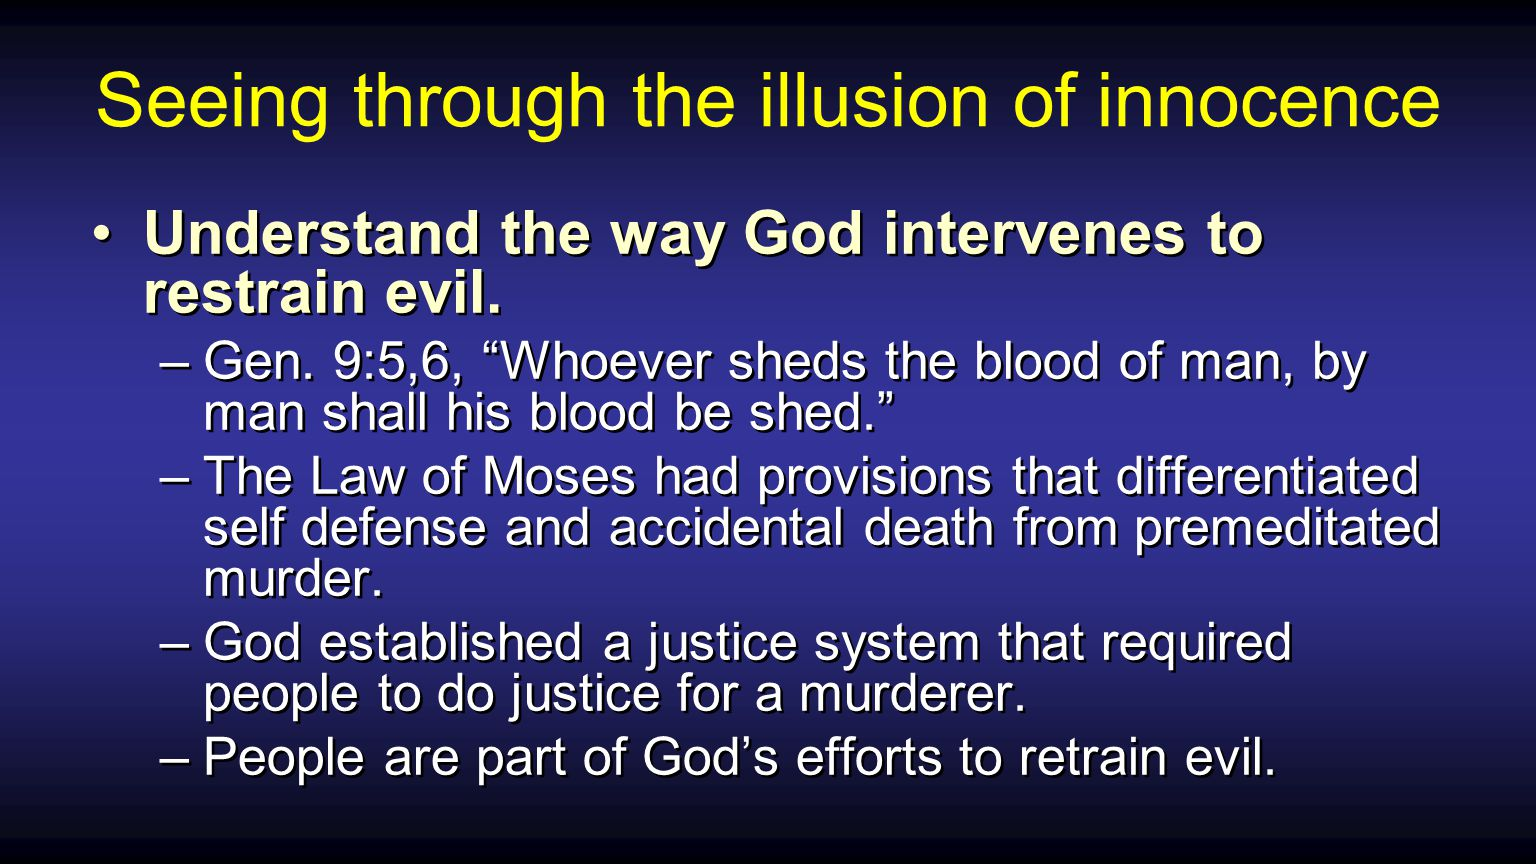 Seeing through the illusion of innocence Understand the way God intervenes to restrain evil.